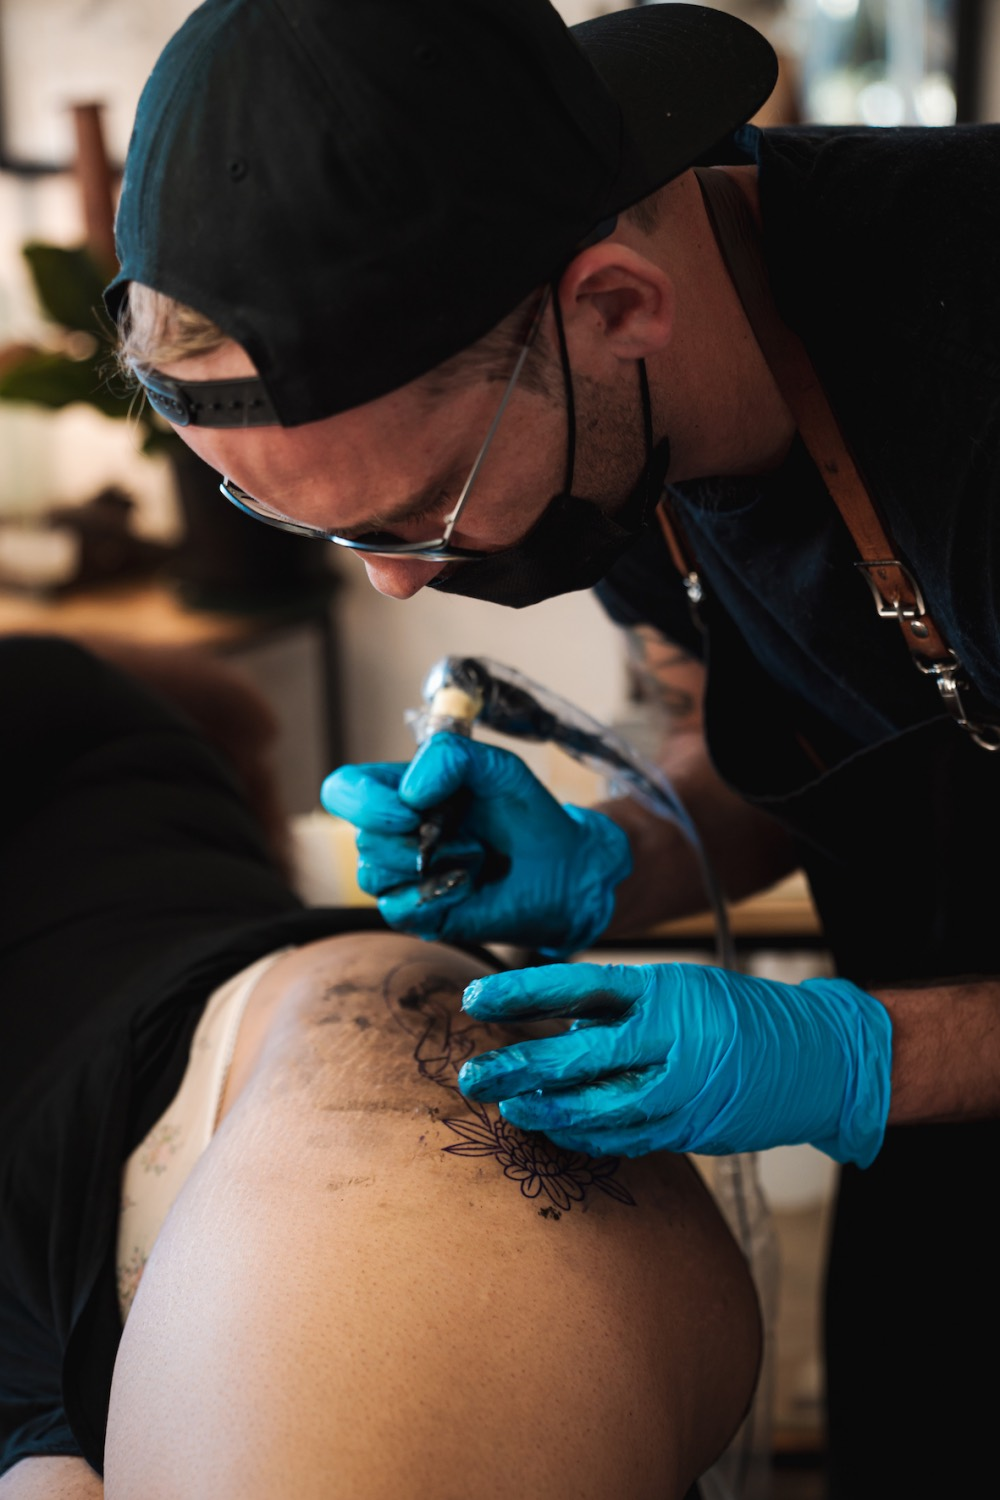 Interview with Charl Steyn of The Tattoo Studio 012